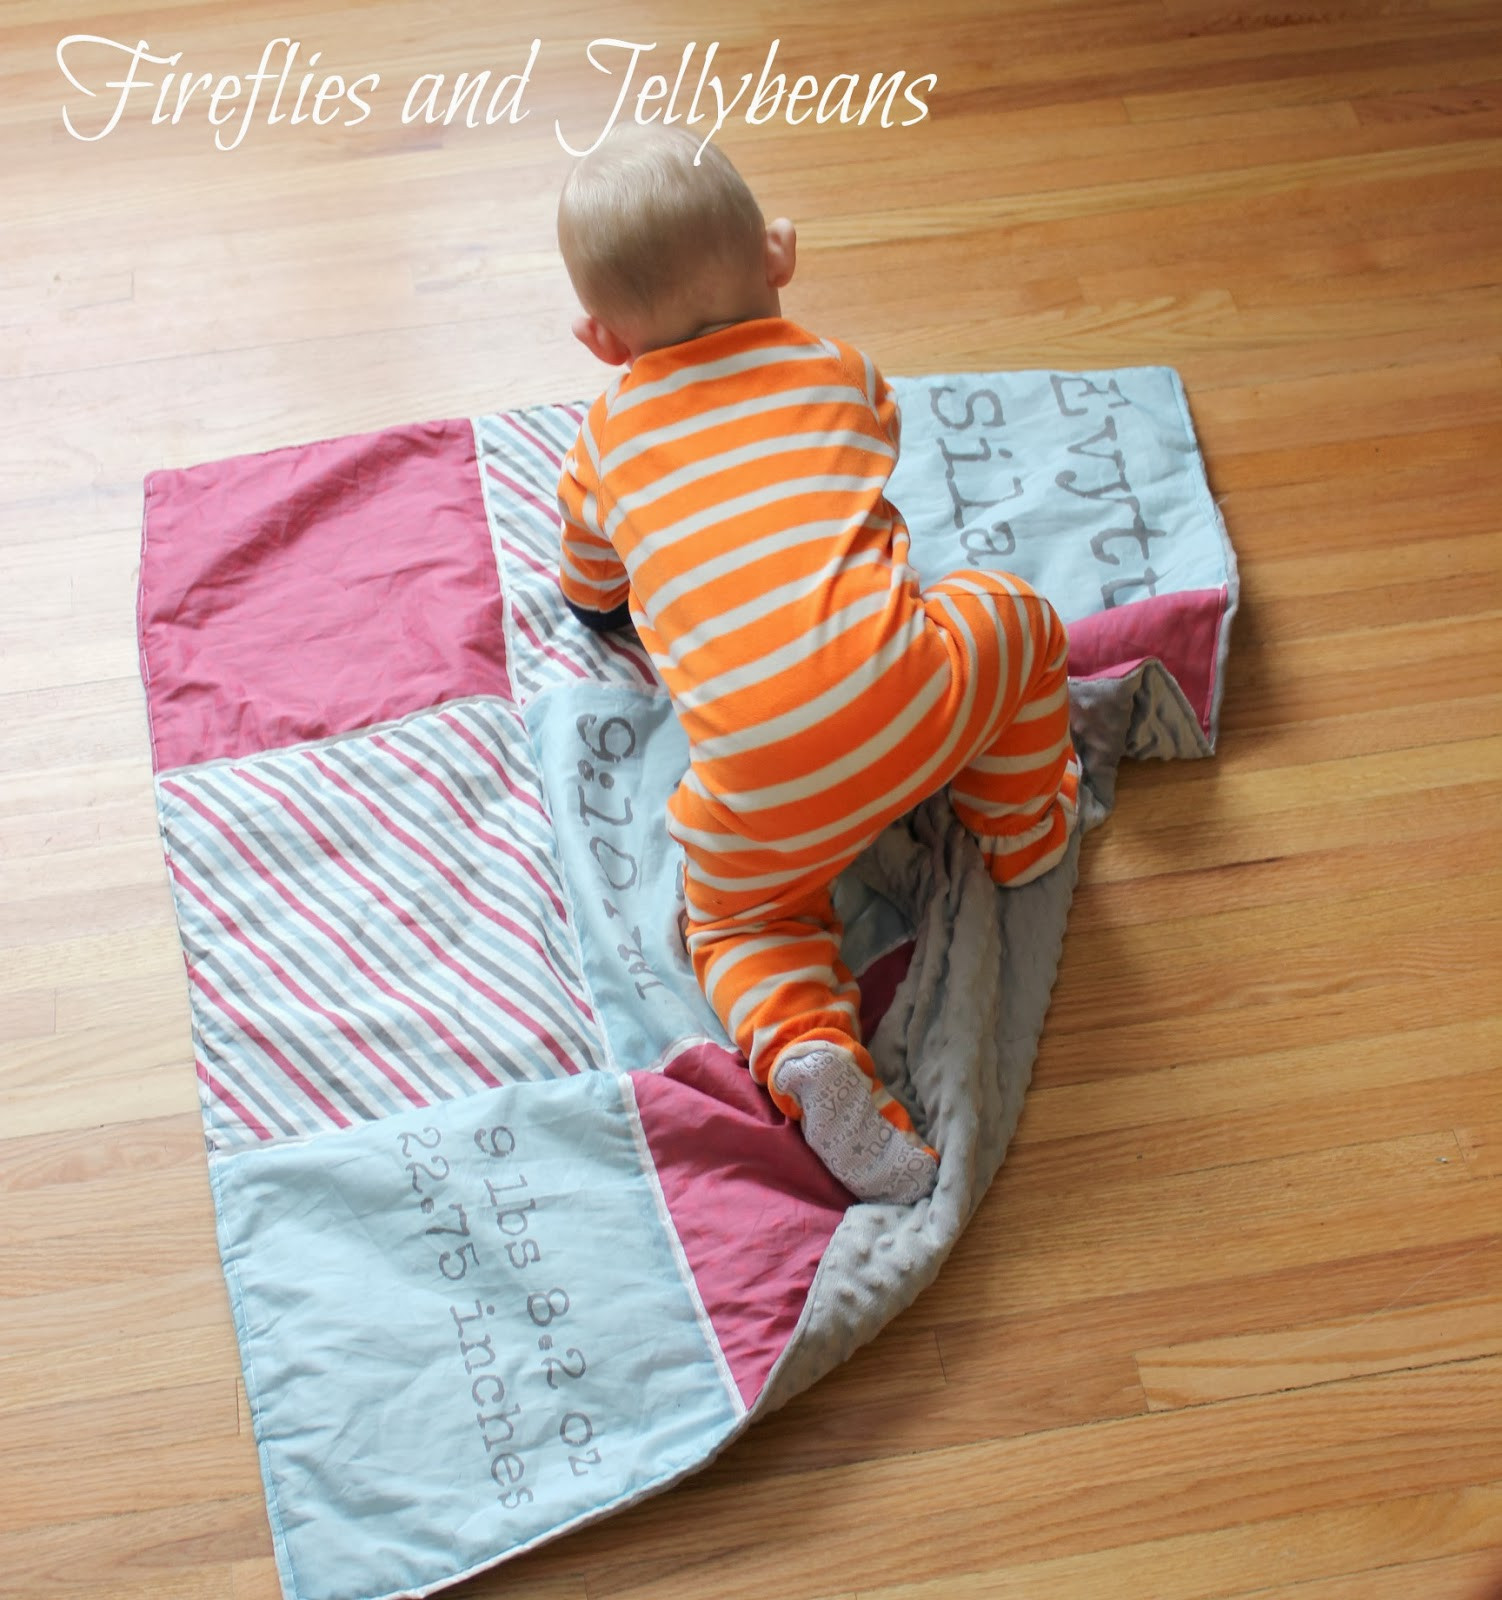 Unique Baby Blankets Awesome Fireflies and Jellybeans Easy Personalized Baby Blanket Of Innovative 40 Ideas Unique Baby Blankets